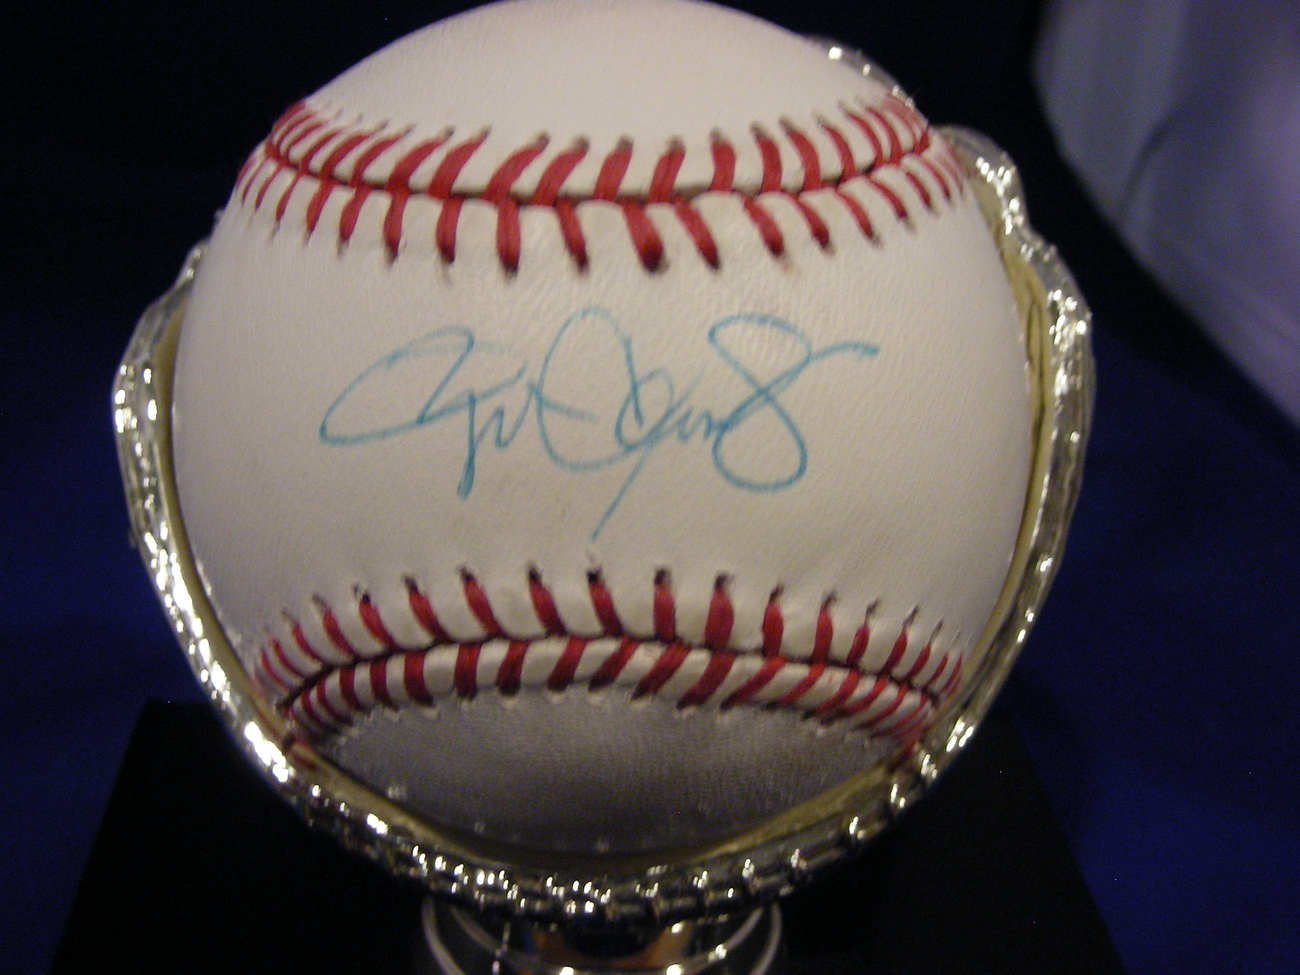 Primary image for ROGER CLEMENS FUTURE HOF'ER 7X CY MVP NEAR ROOKIE AUTO SIGNED BASEBALL PSA/DNA